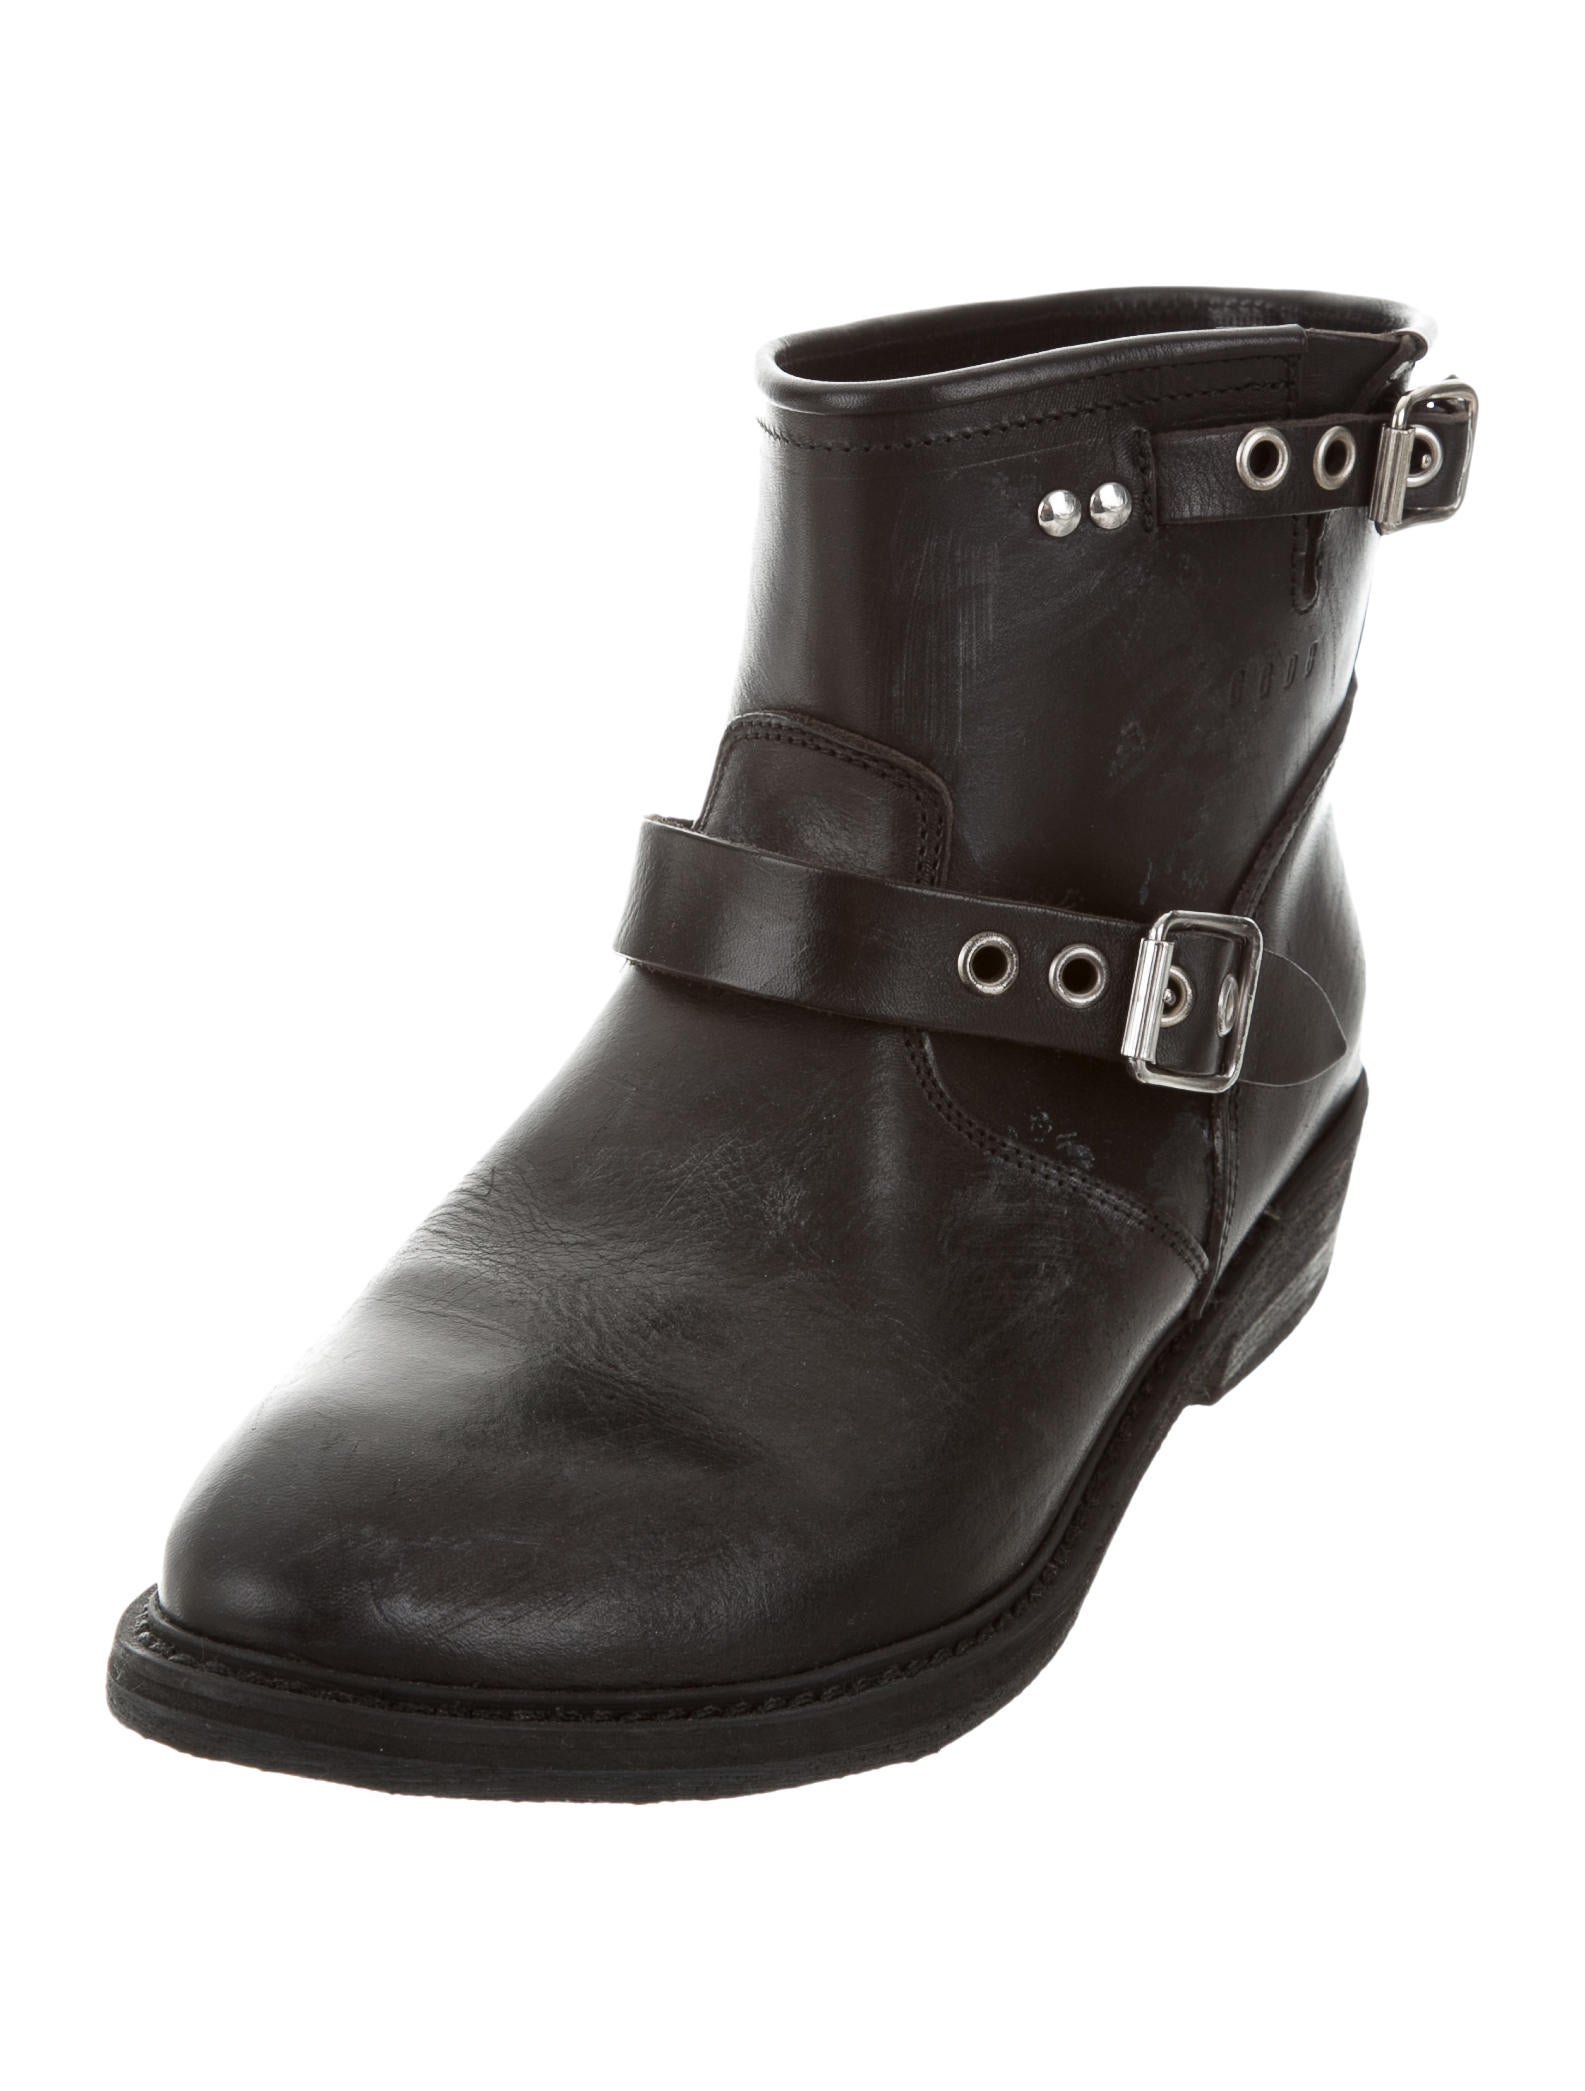 golden goose distressed biker boots w tags shoes wg524410 the realreal. Black Bedroom Furniture Sets. Home Design Ideas